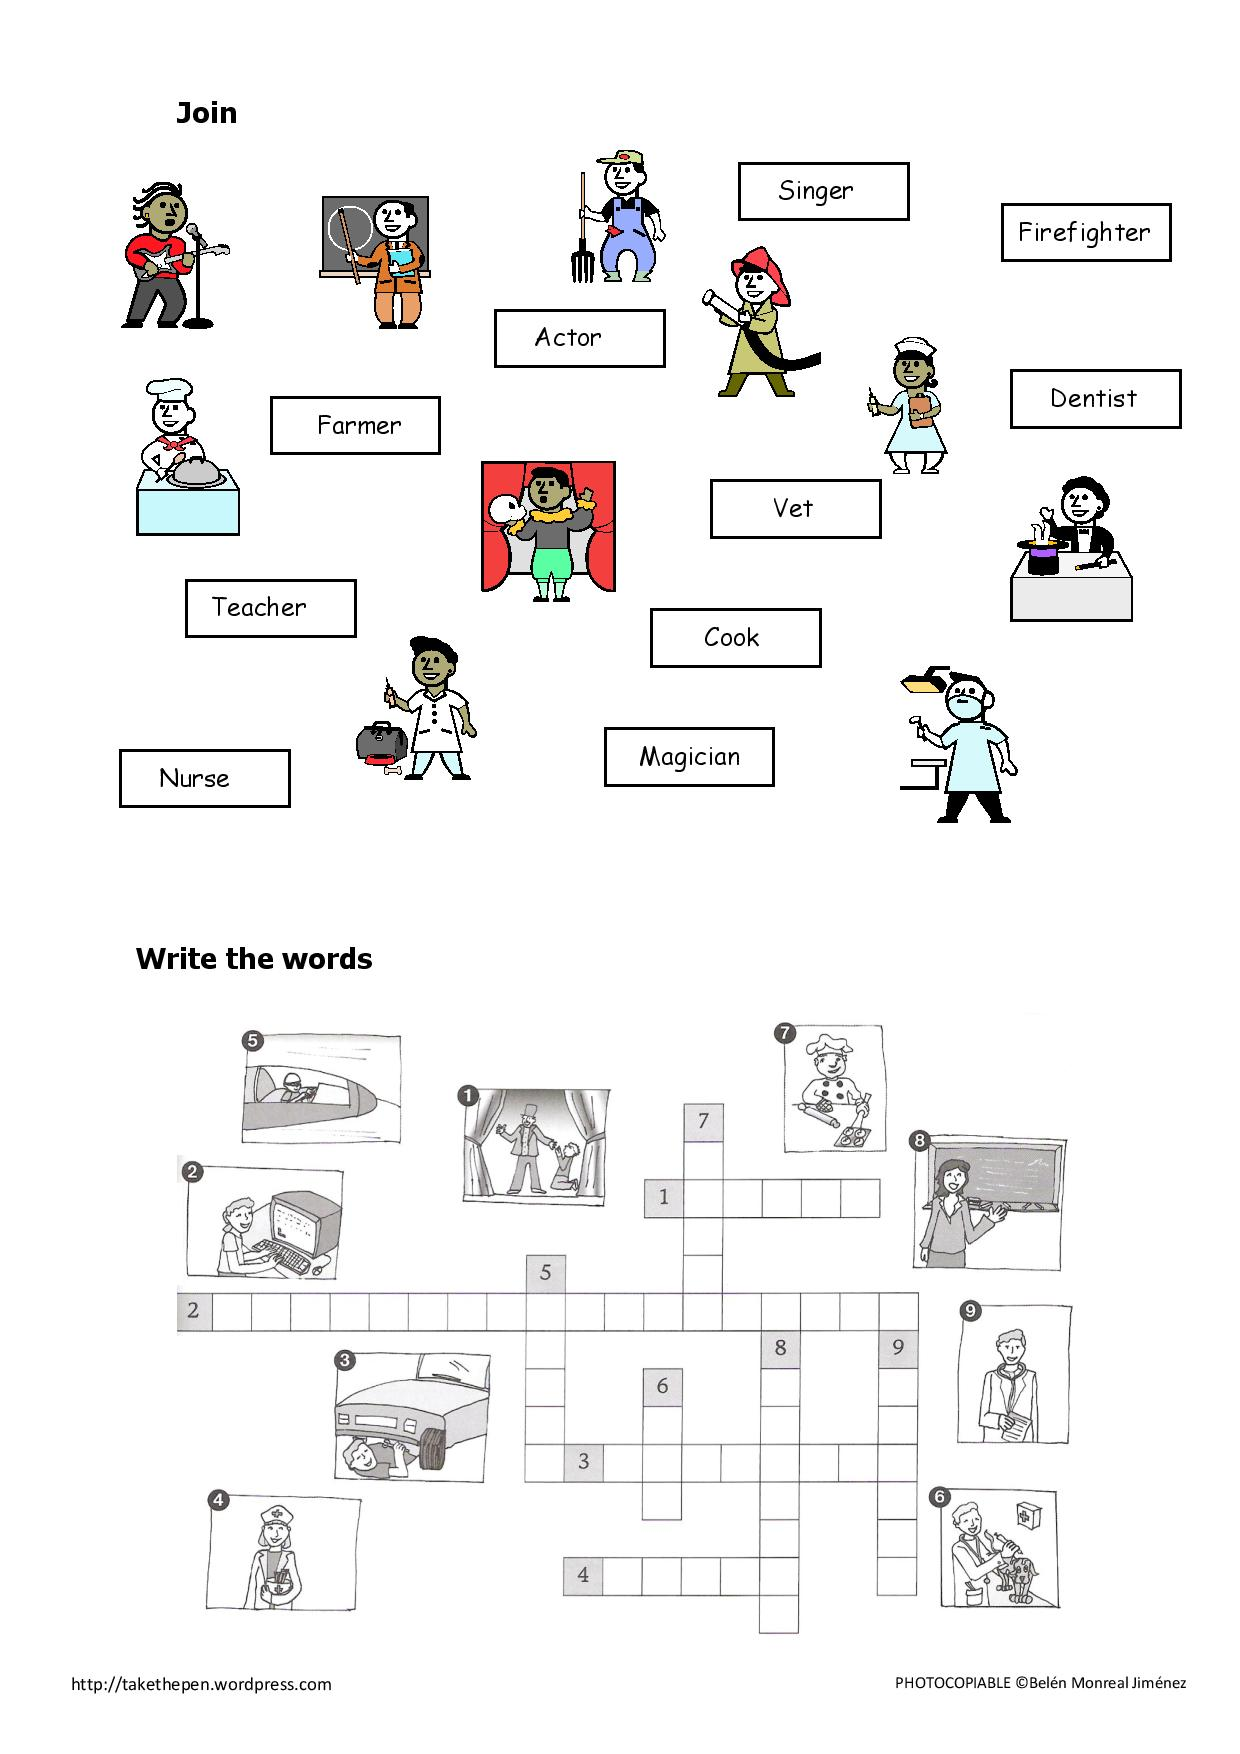 Jobs Crossword submited images.